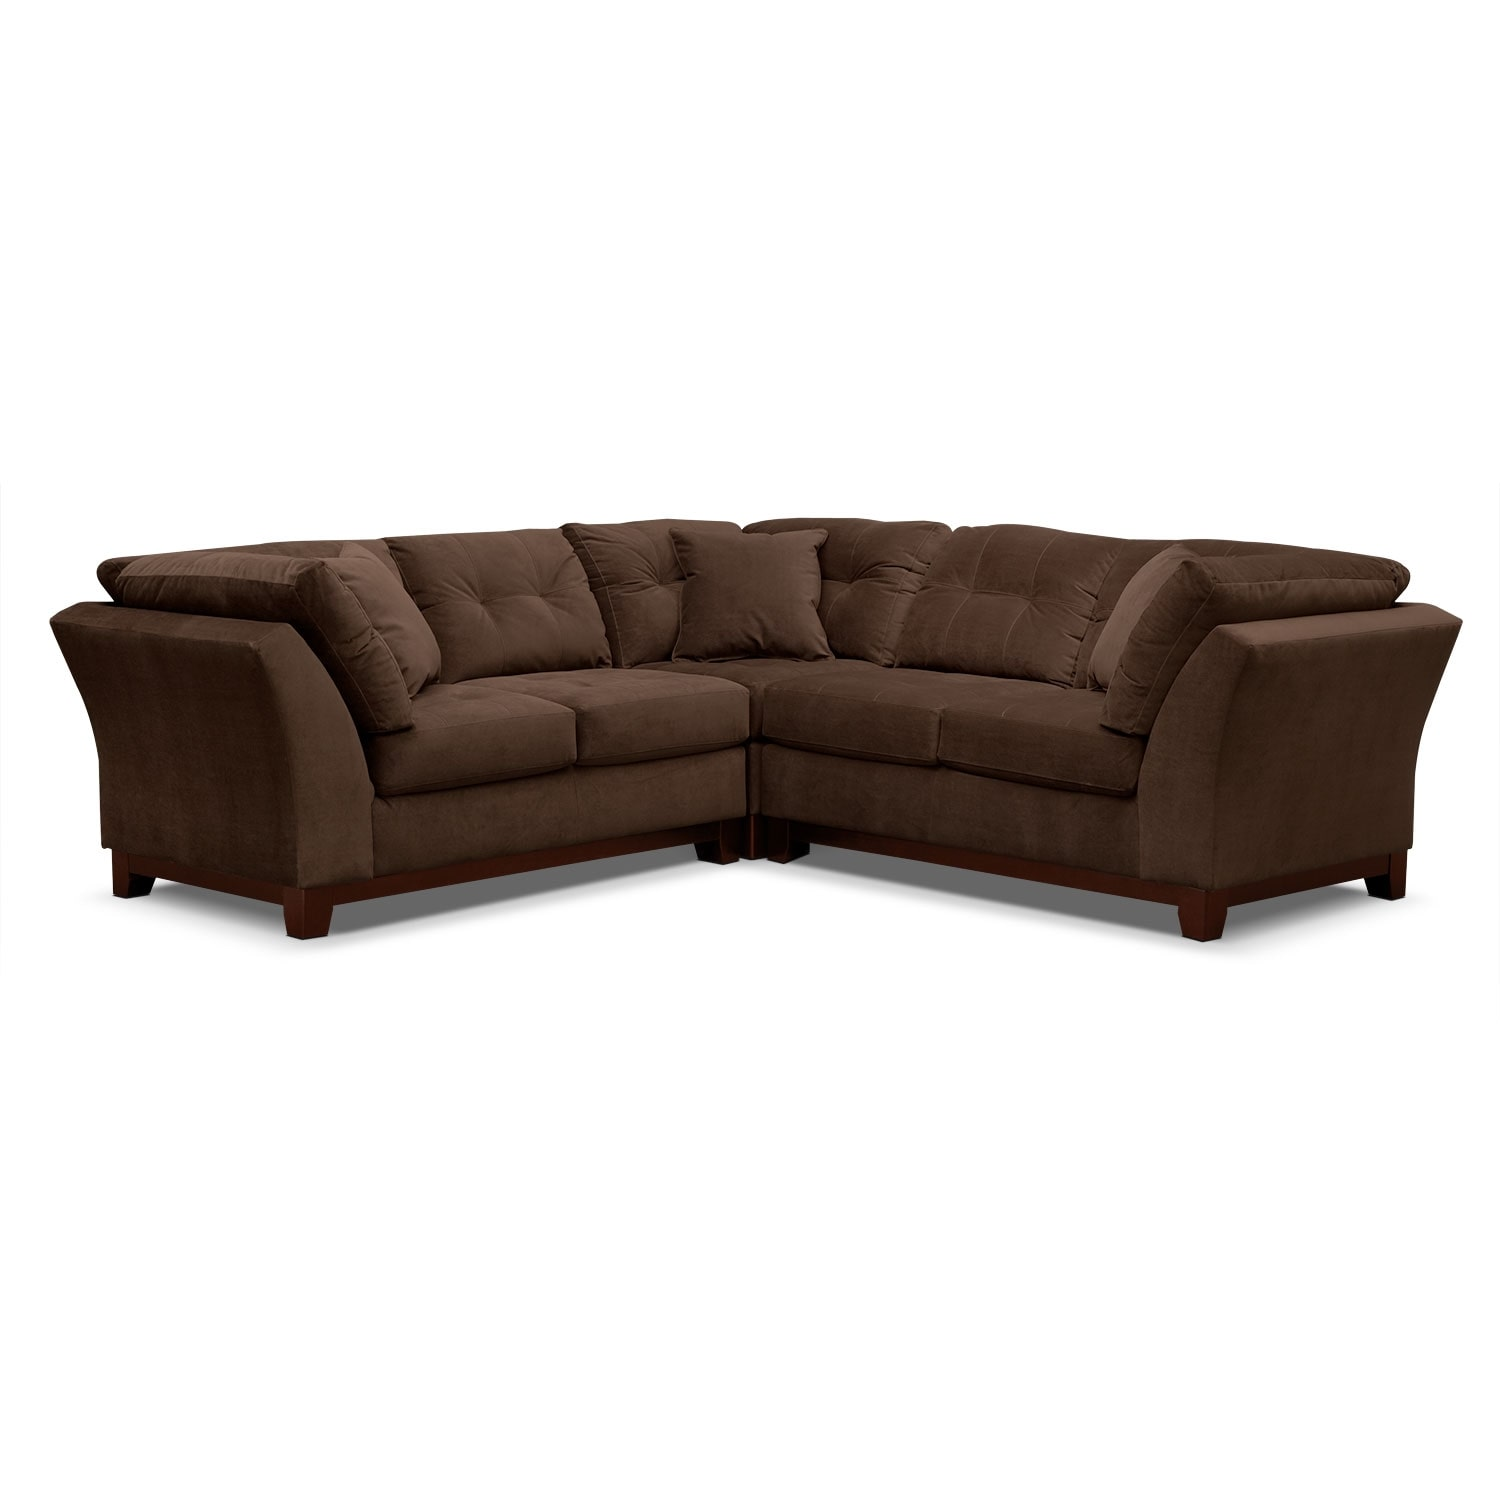 Solace 3-Piece Sectional - Chocolate